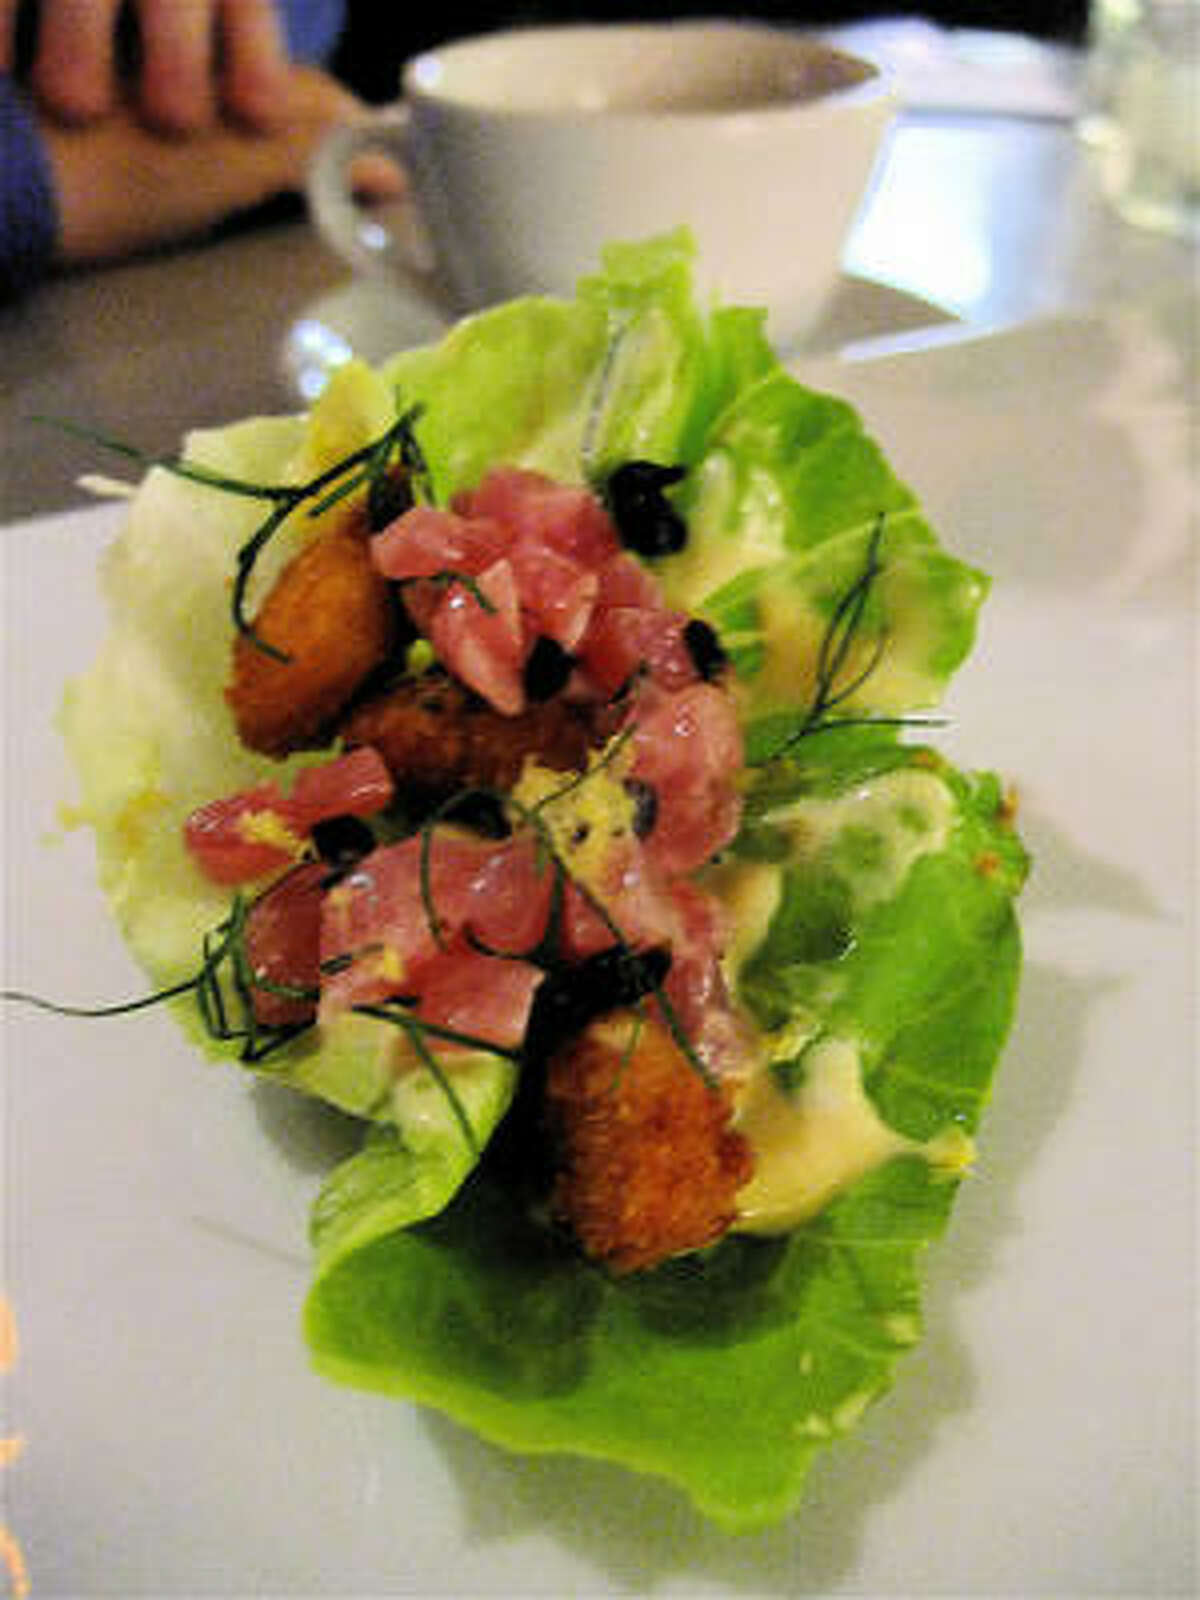 Lettuce hand roll with fried sweetbreads, tuna and dashi, 10.10.10 tasting-menu dinner at Paulie's, by chefs Seth Siegel-Gardner and Justin Yu. Beverages were a collaboration with Greenway Coffee's David Buerhrer.